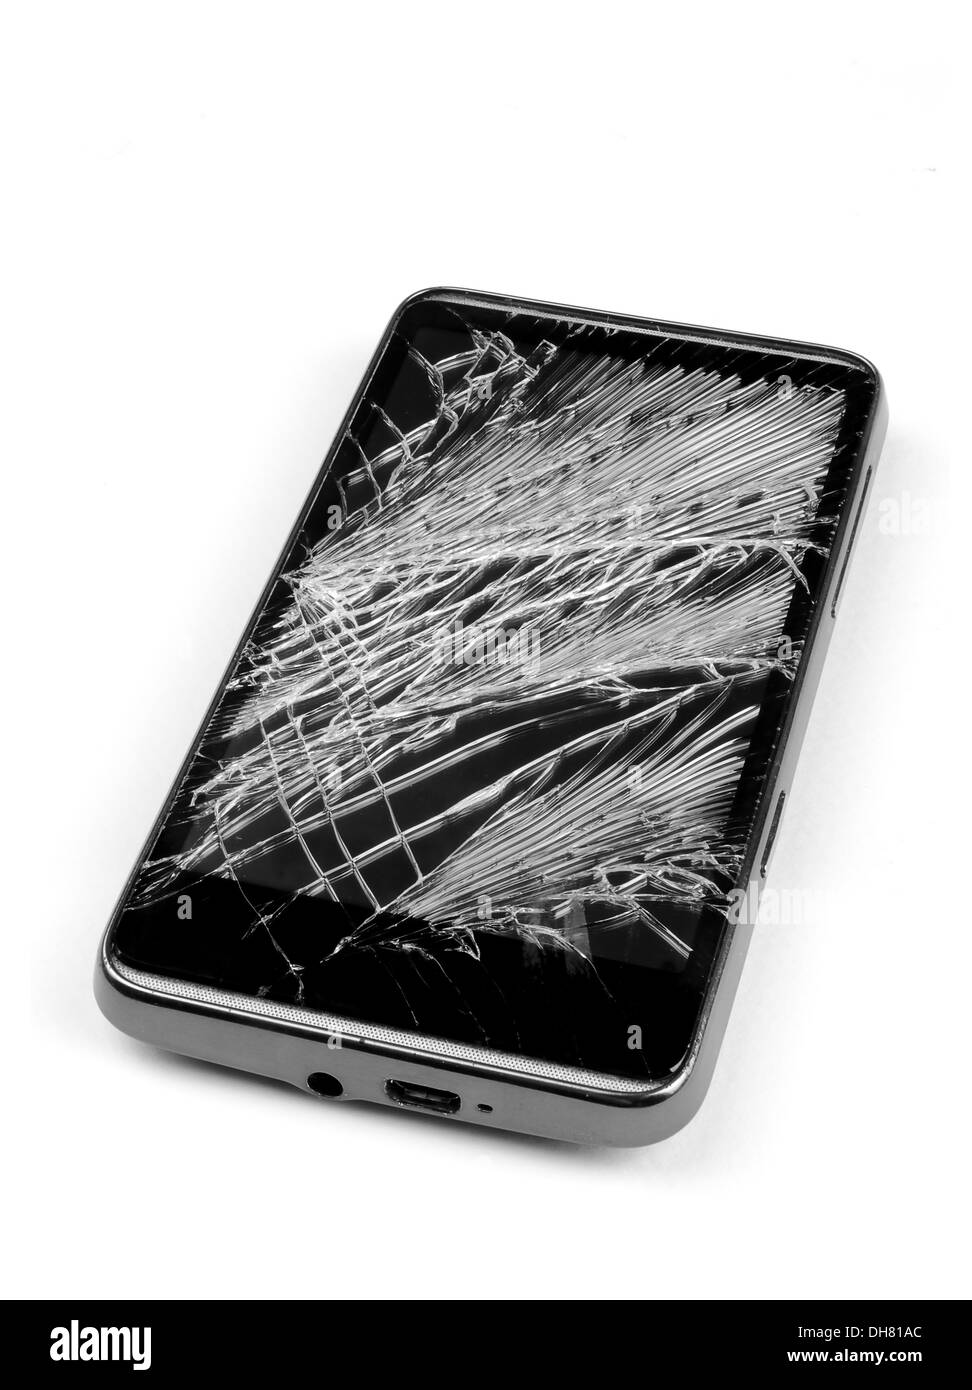 Cracked, broken, damaged smart phone - cell phone - Stock Image